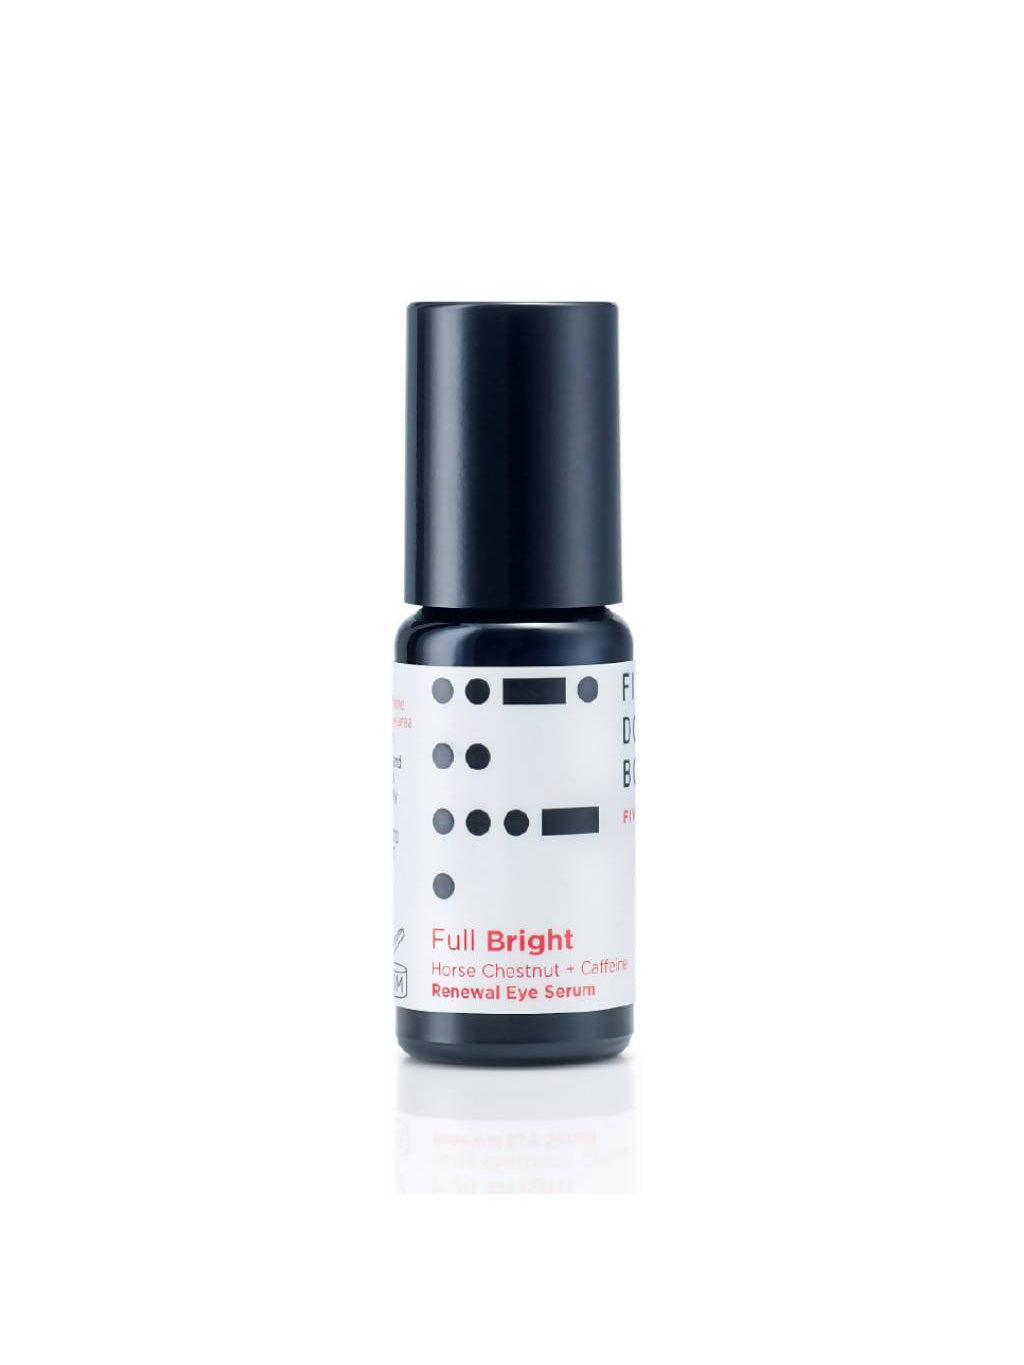 Full Bright Horse Chestnut + Caffeine Renewal Eye Serum